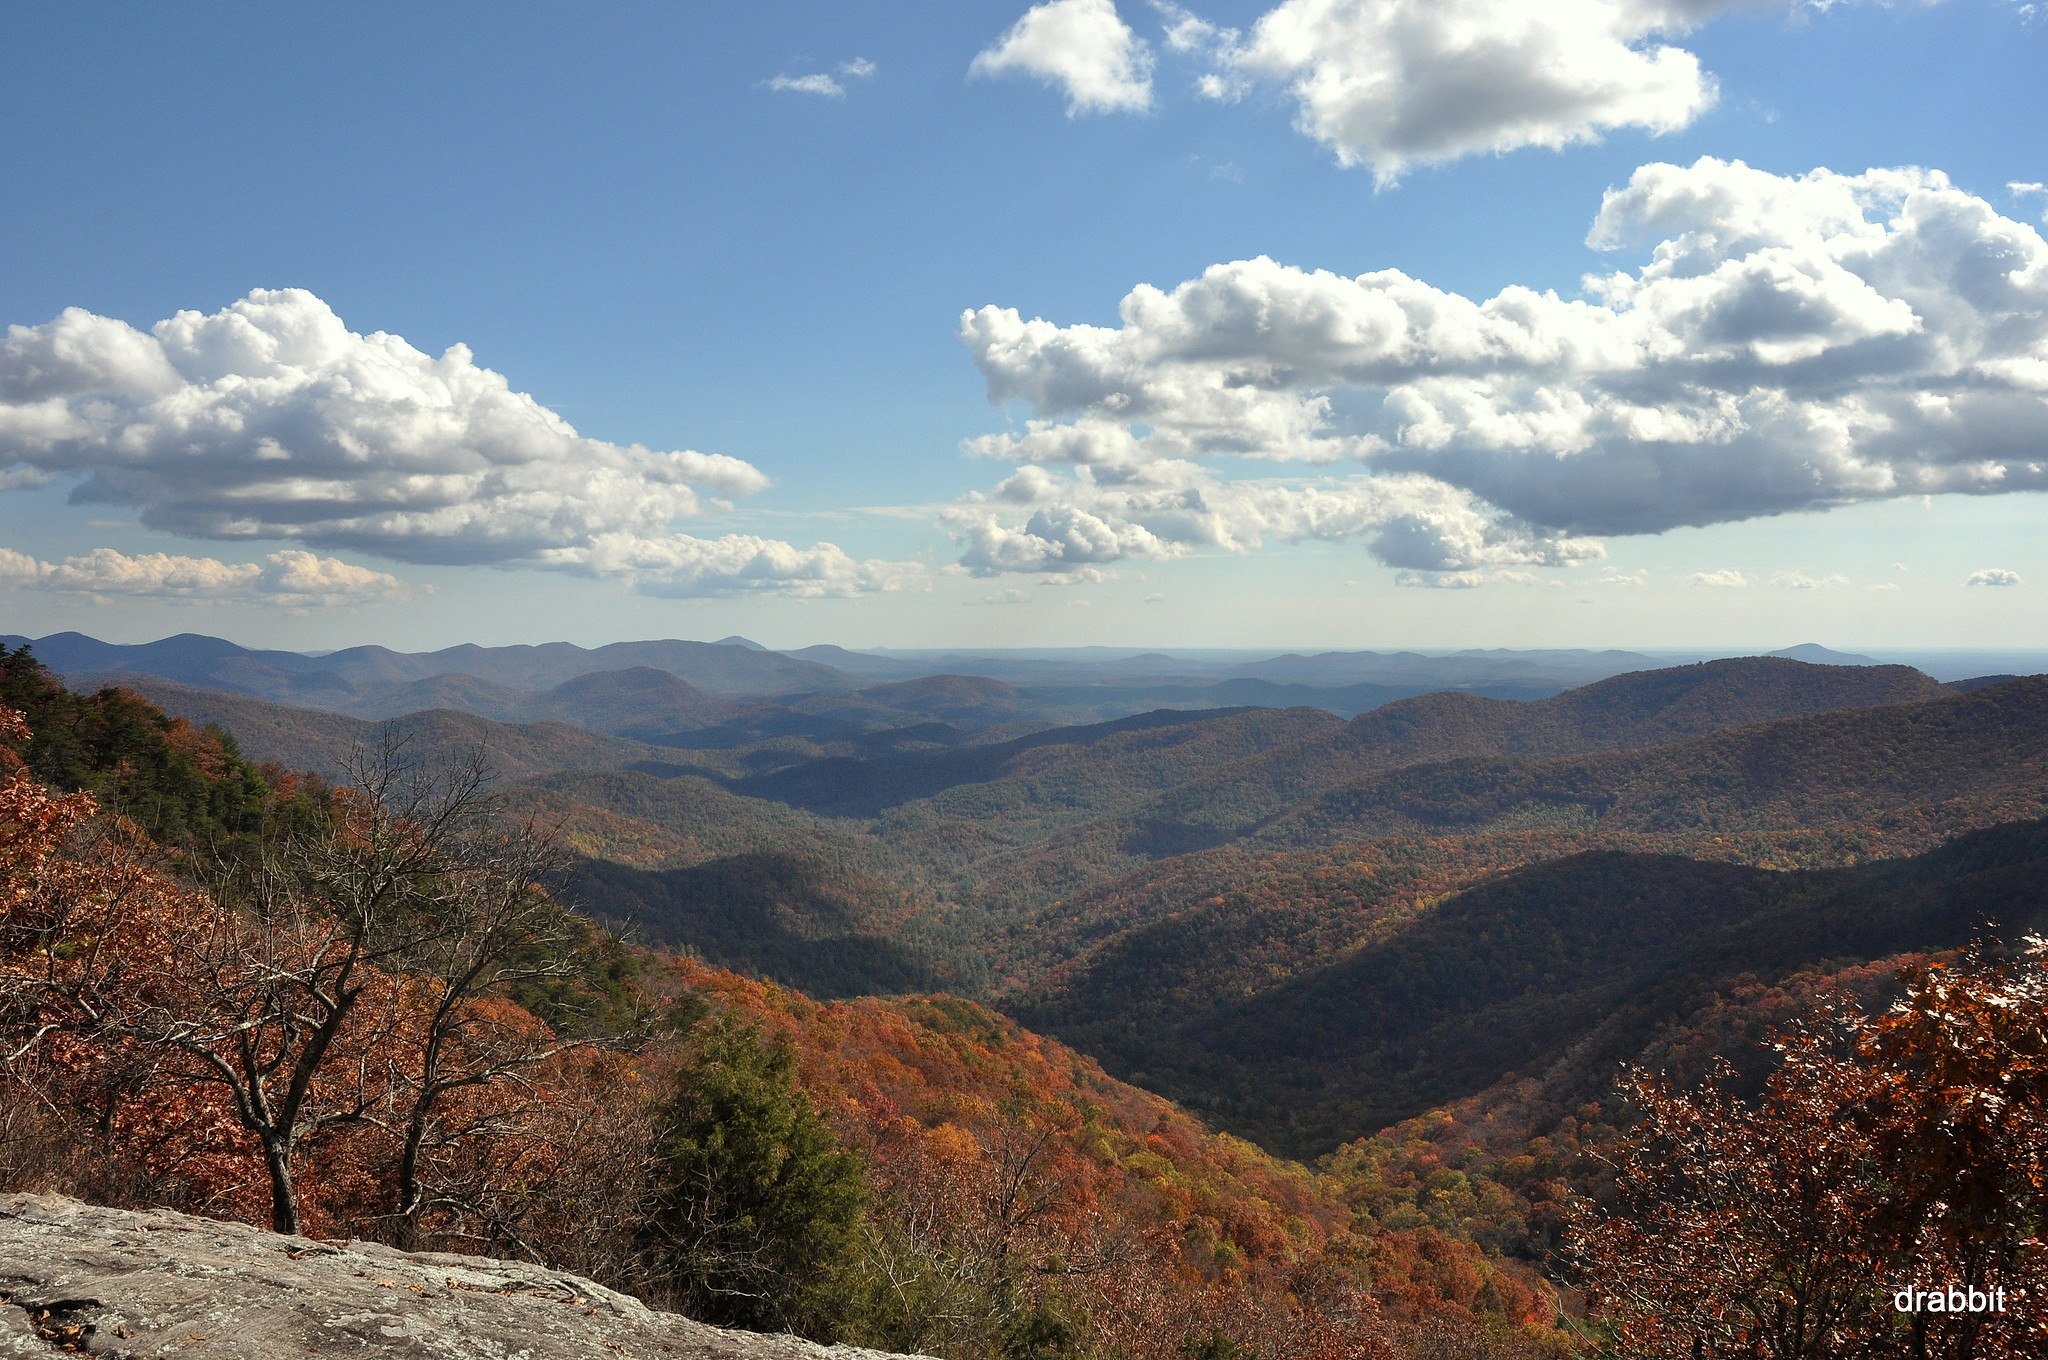 View from Preacher's Rock, Georgia